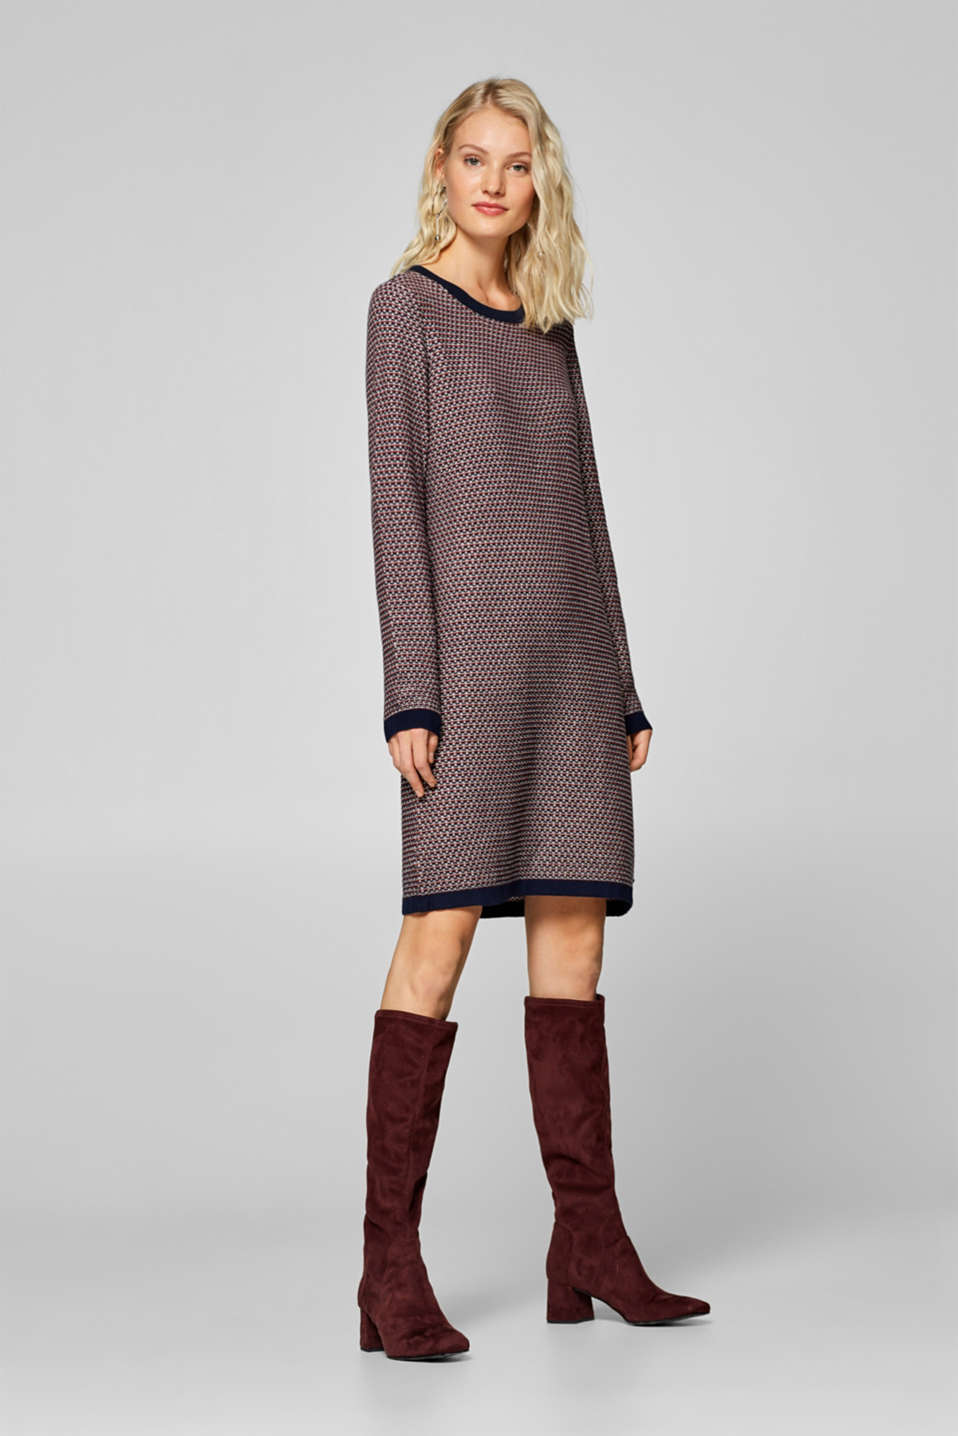 edc - Textured knit dress, 100% cotton